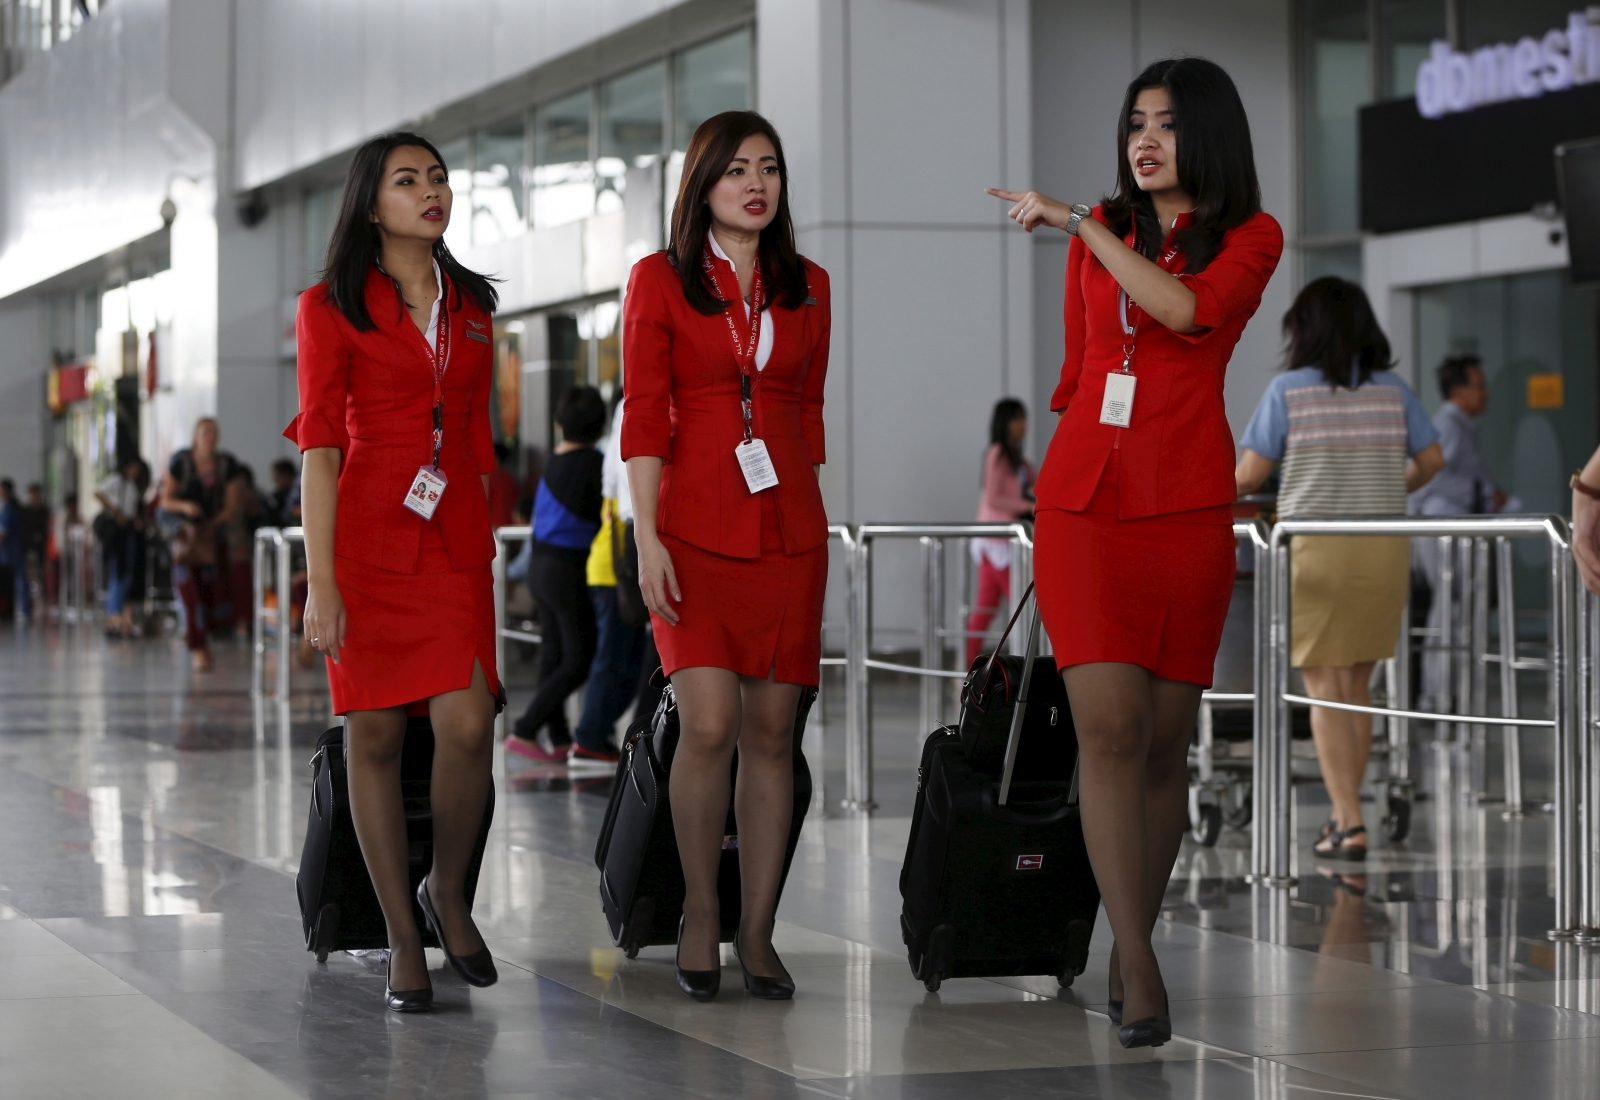 'Sexy' stewardess uniforms arouse debate in Malaysian parliament